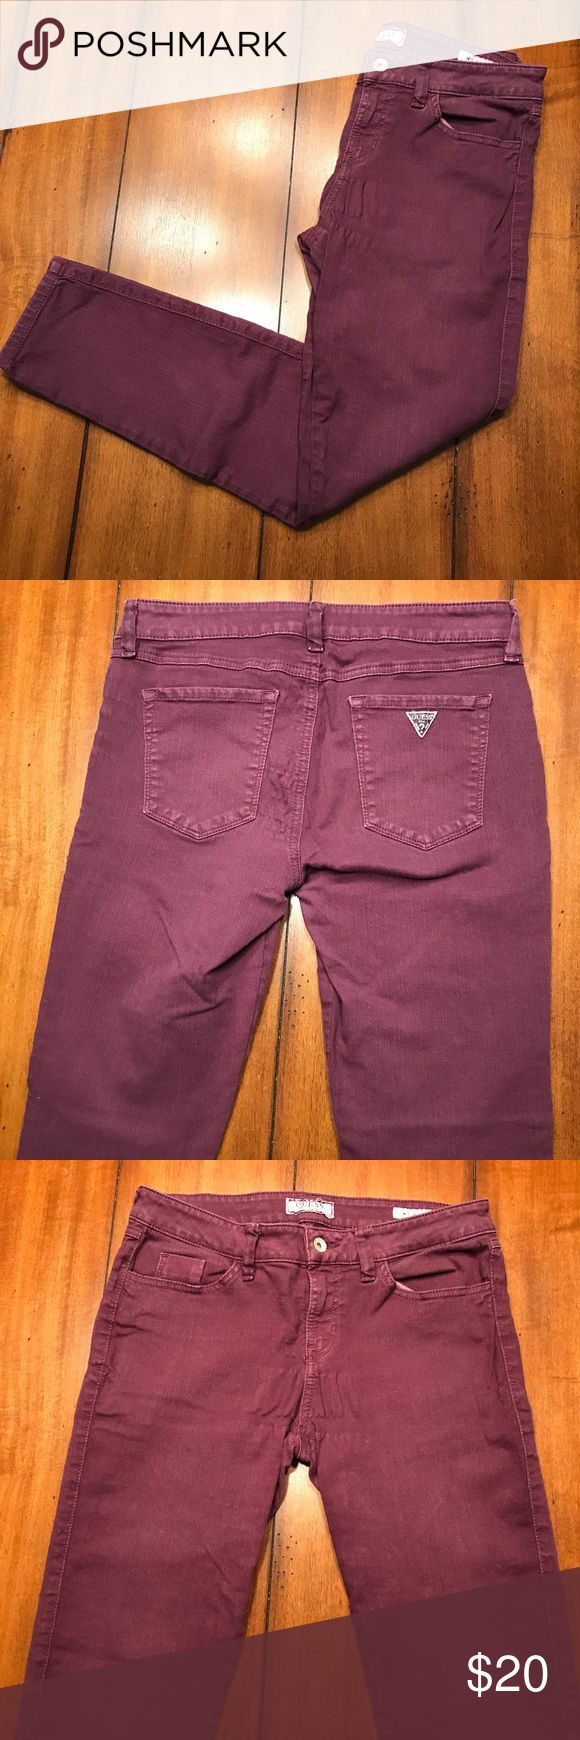 Guess Purple Skinny Jeans These jeans are so comfortable! A fun twist to your regular old skinny jean! Minor pulling of the fabric but it's not that noticeable when you have them on! Let me know if you have questions😊 I'm selling as they are big on me. Guess Jeans Skinny